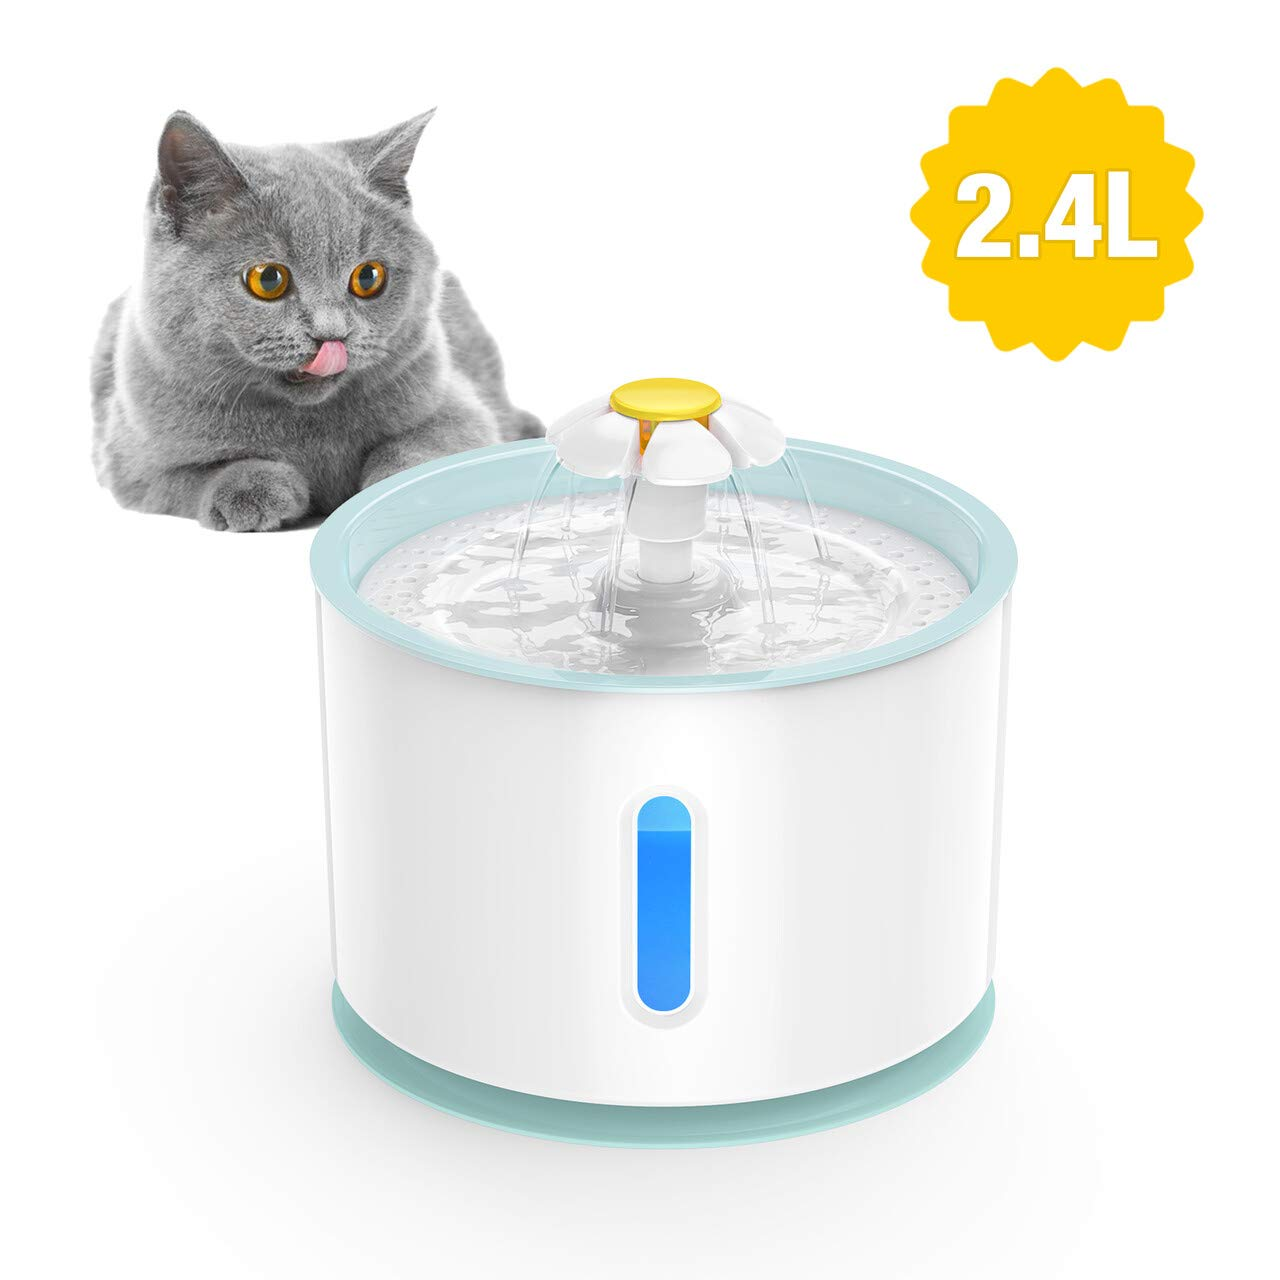 Great water bowl for our cats and medium sized dog